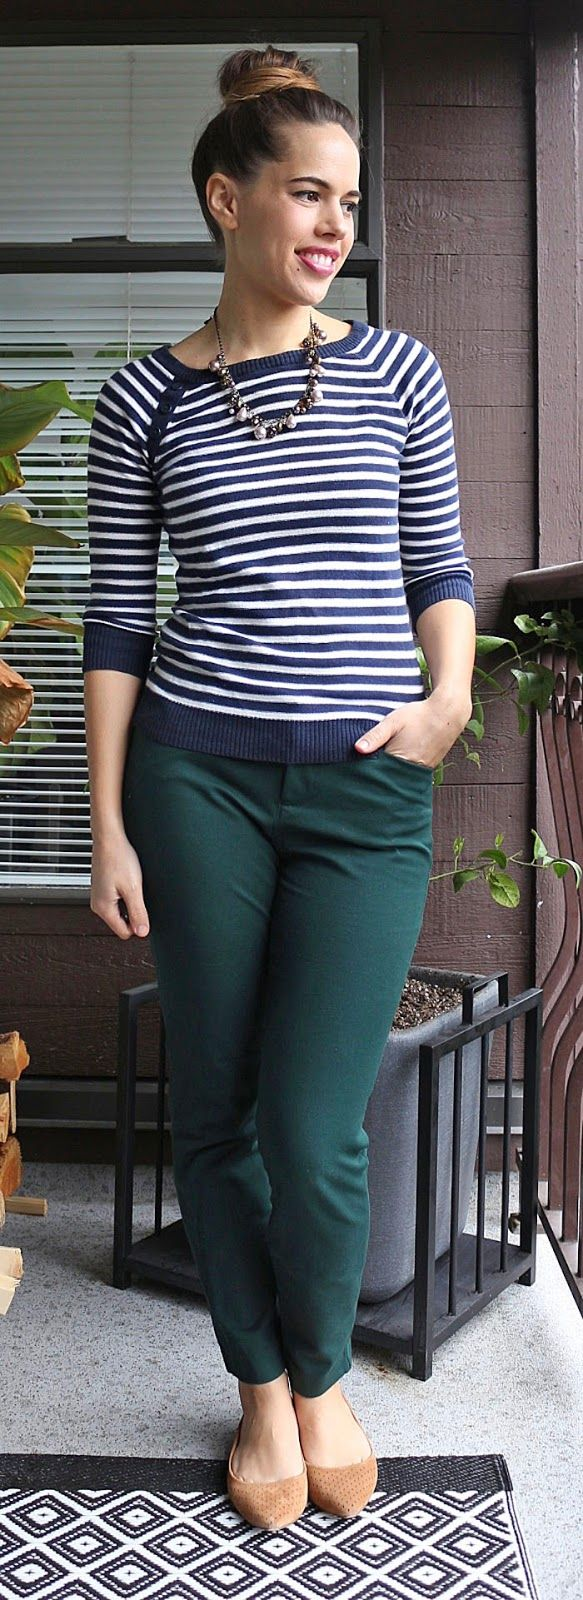 Black t shirt navy pants - Jules In Flats H M Striped Sweater Old Navy Pixie Pants